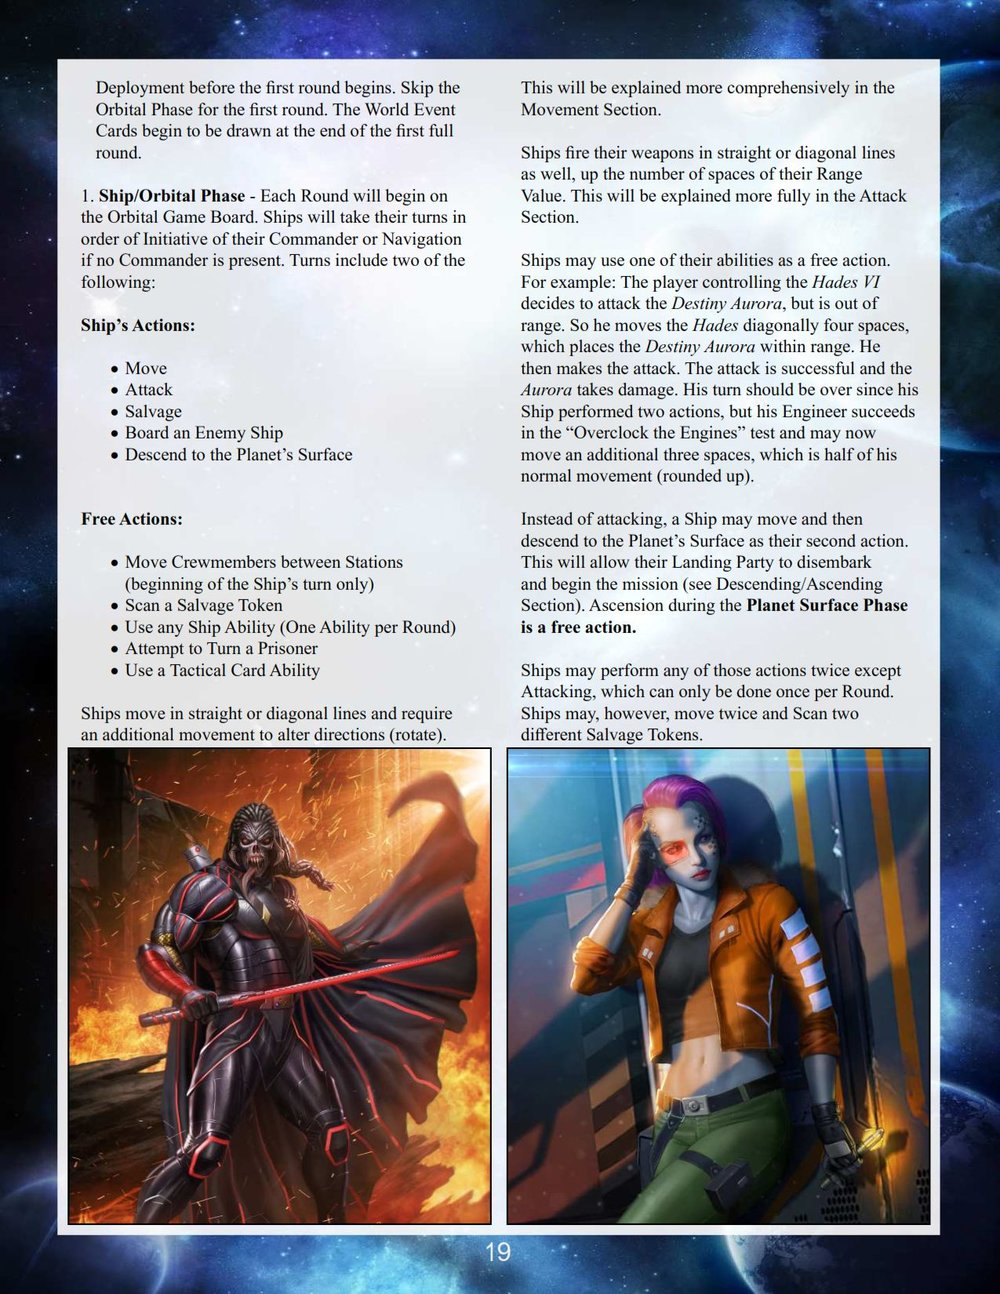 Renegades_Rule_Book_020.jpg